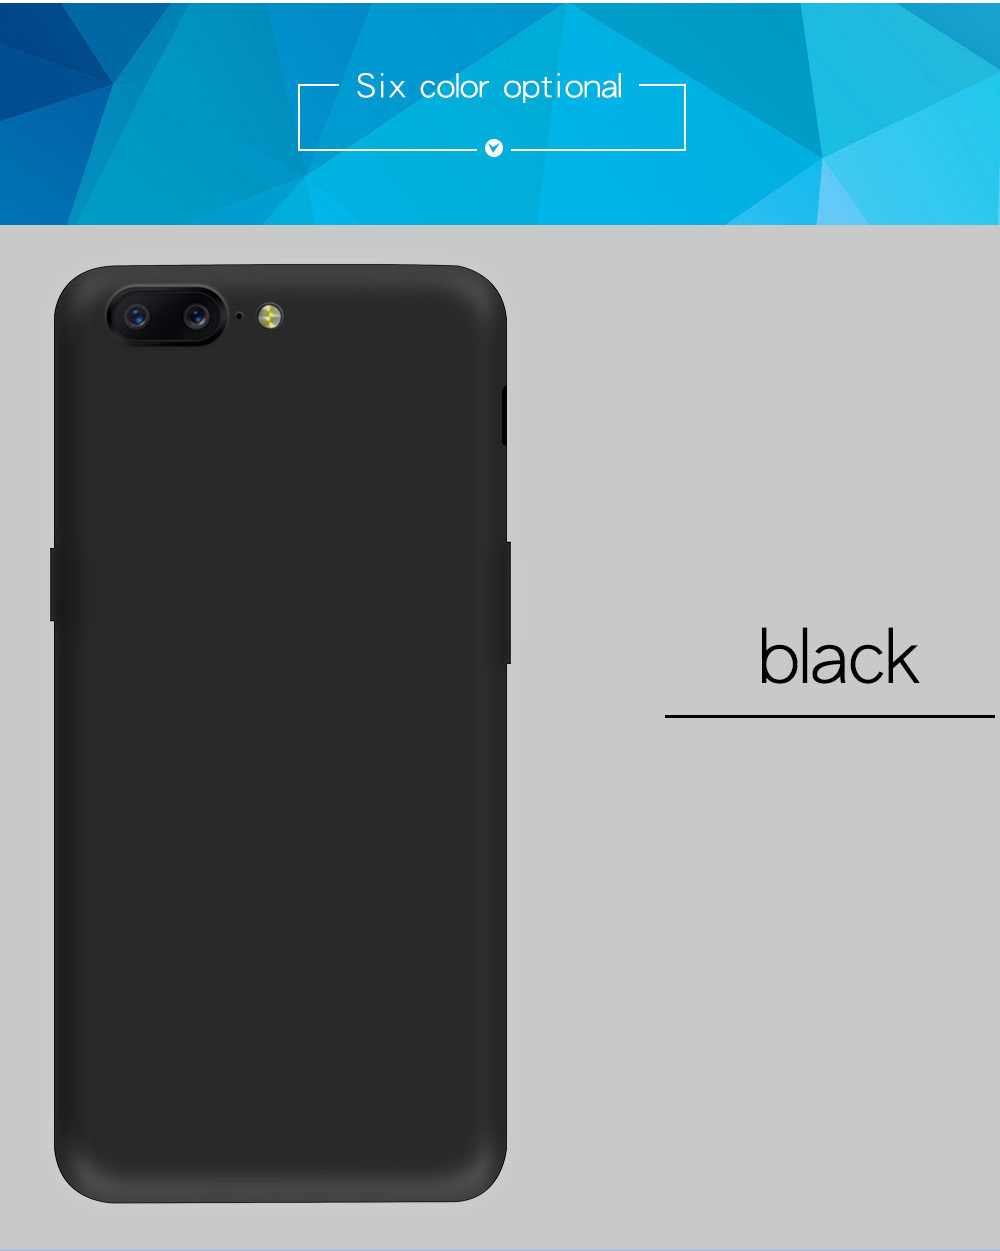 KEYSION Case for Oneplus 5 Luxury protective phone case Ultra-thin matte Hard PC back cover for Oneplus 5 A5000 5.5 inch 5